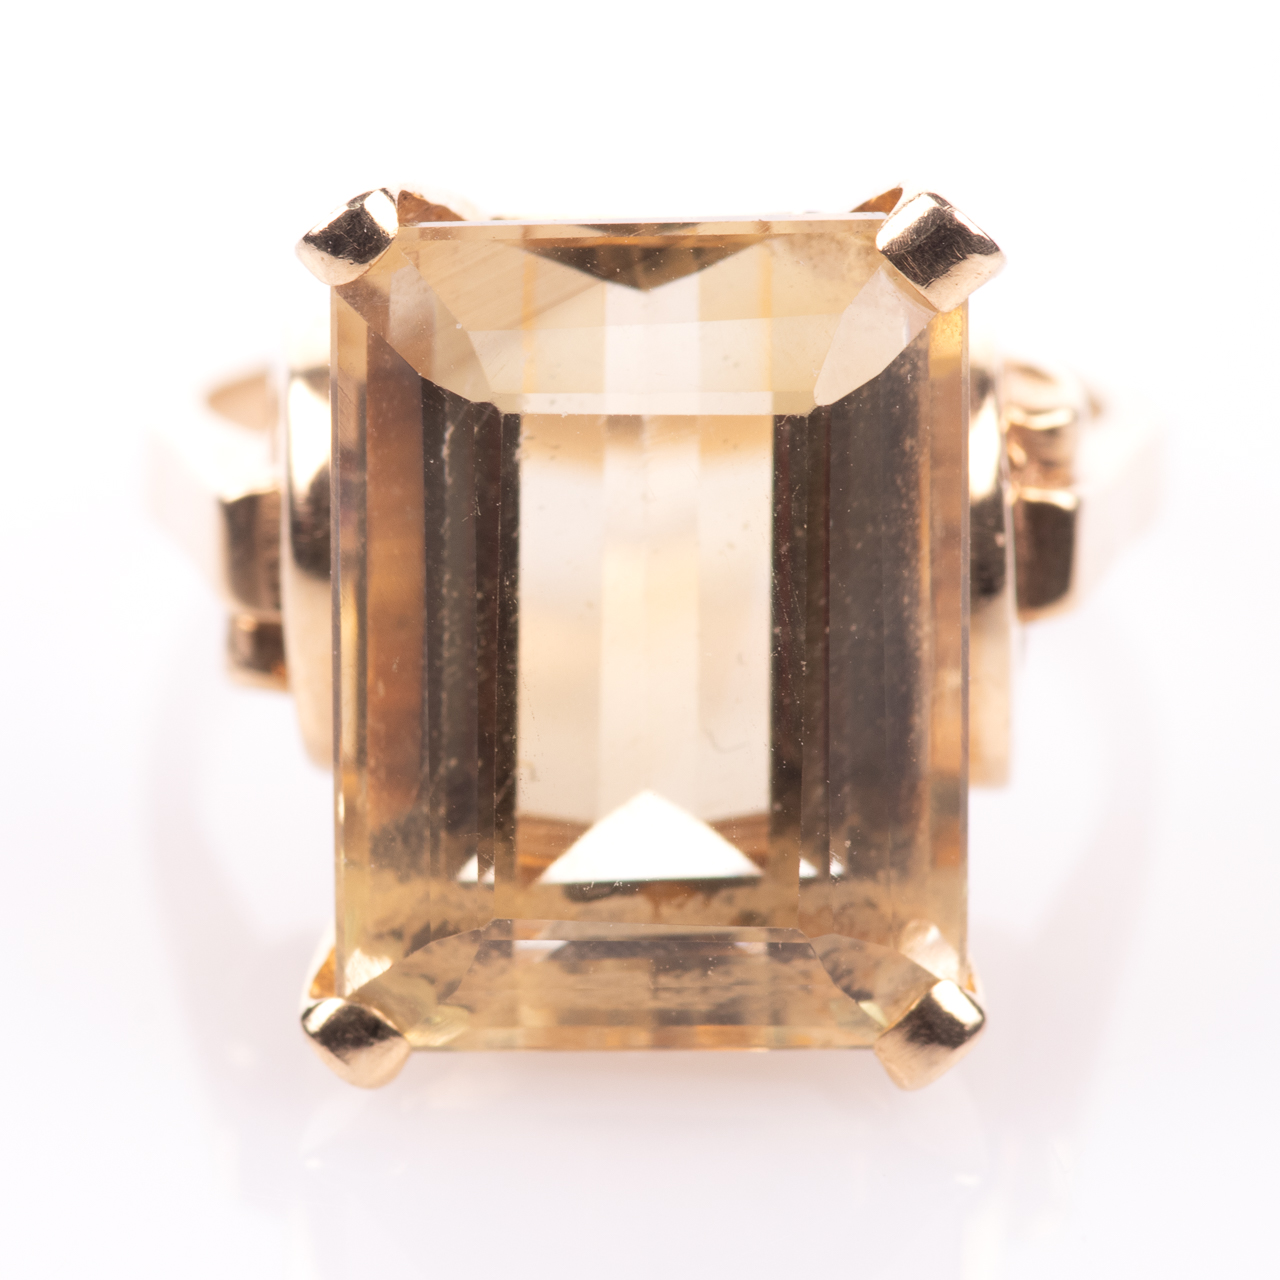 14ct Gold 15ct Citrine Ring - Image 3 of 7